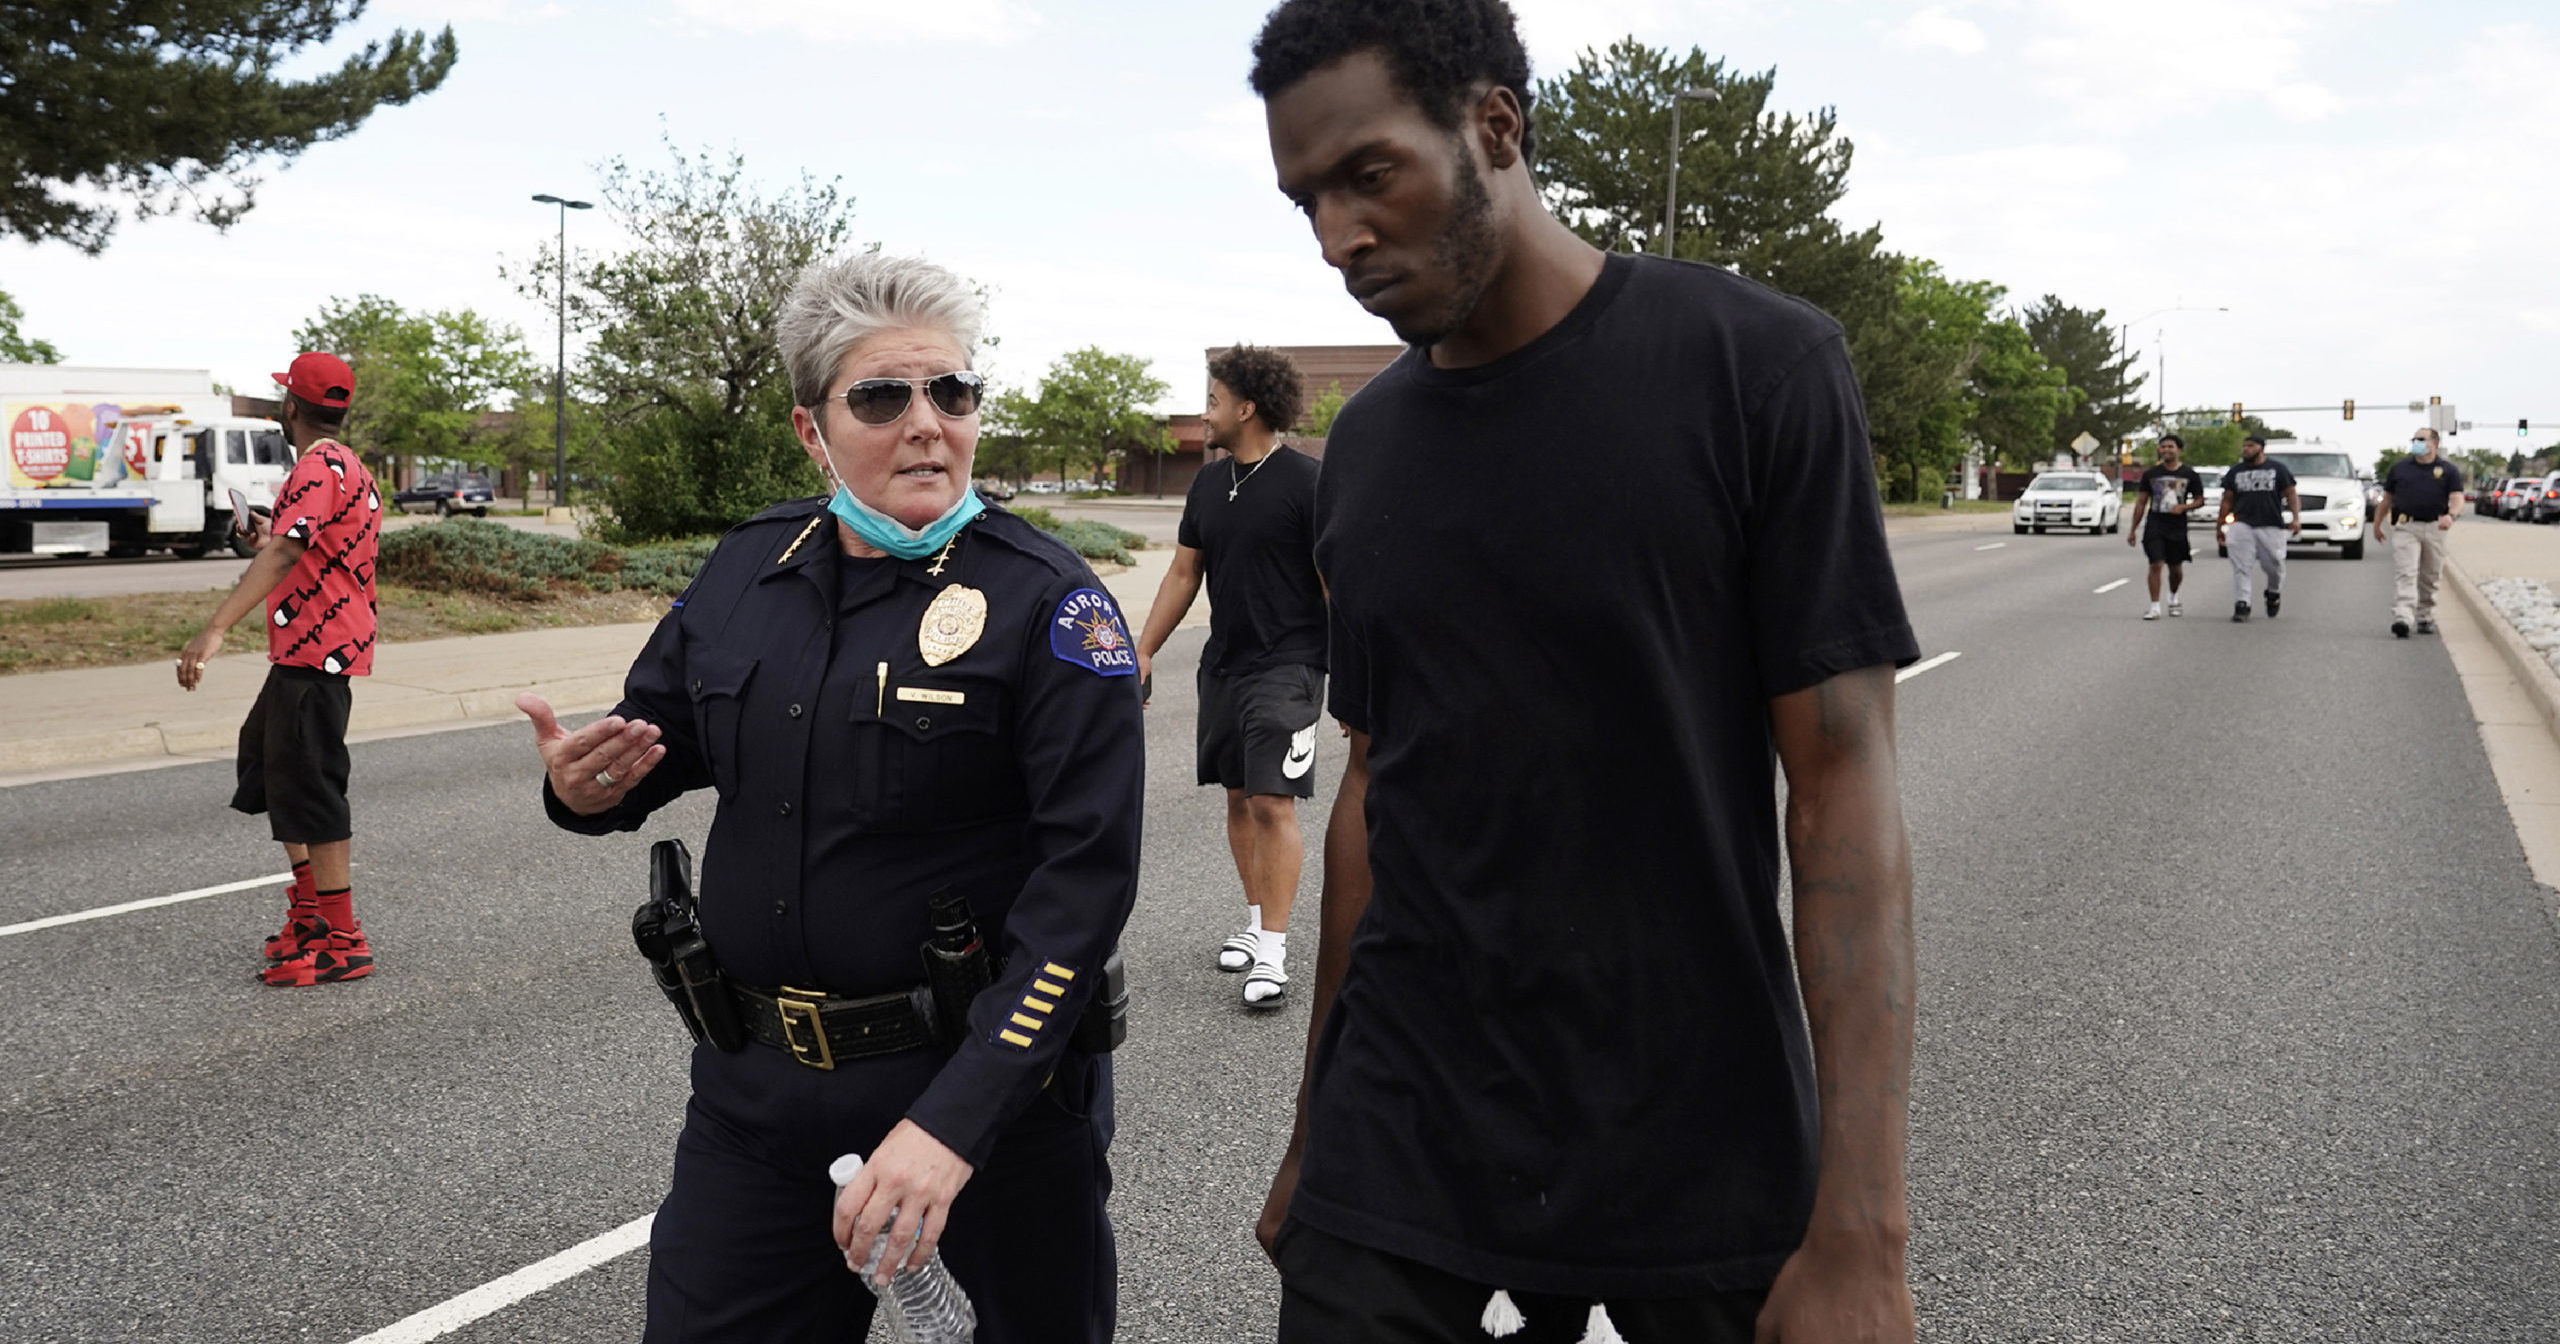 In this June 2, 2020, file photo, interim Aurora Police Chief Vanessa Wilson confers with a demonstrator during a peaceful protest in Aurora, Colorado.